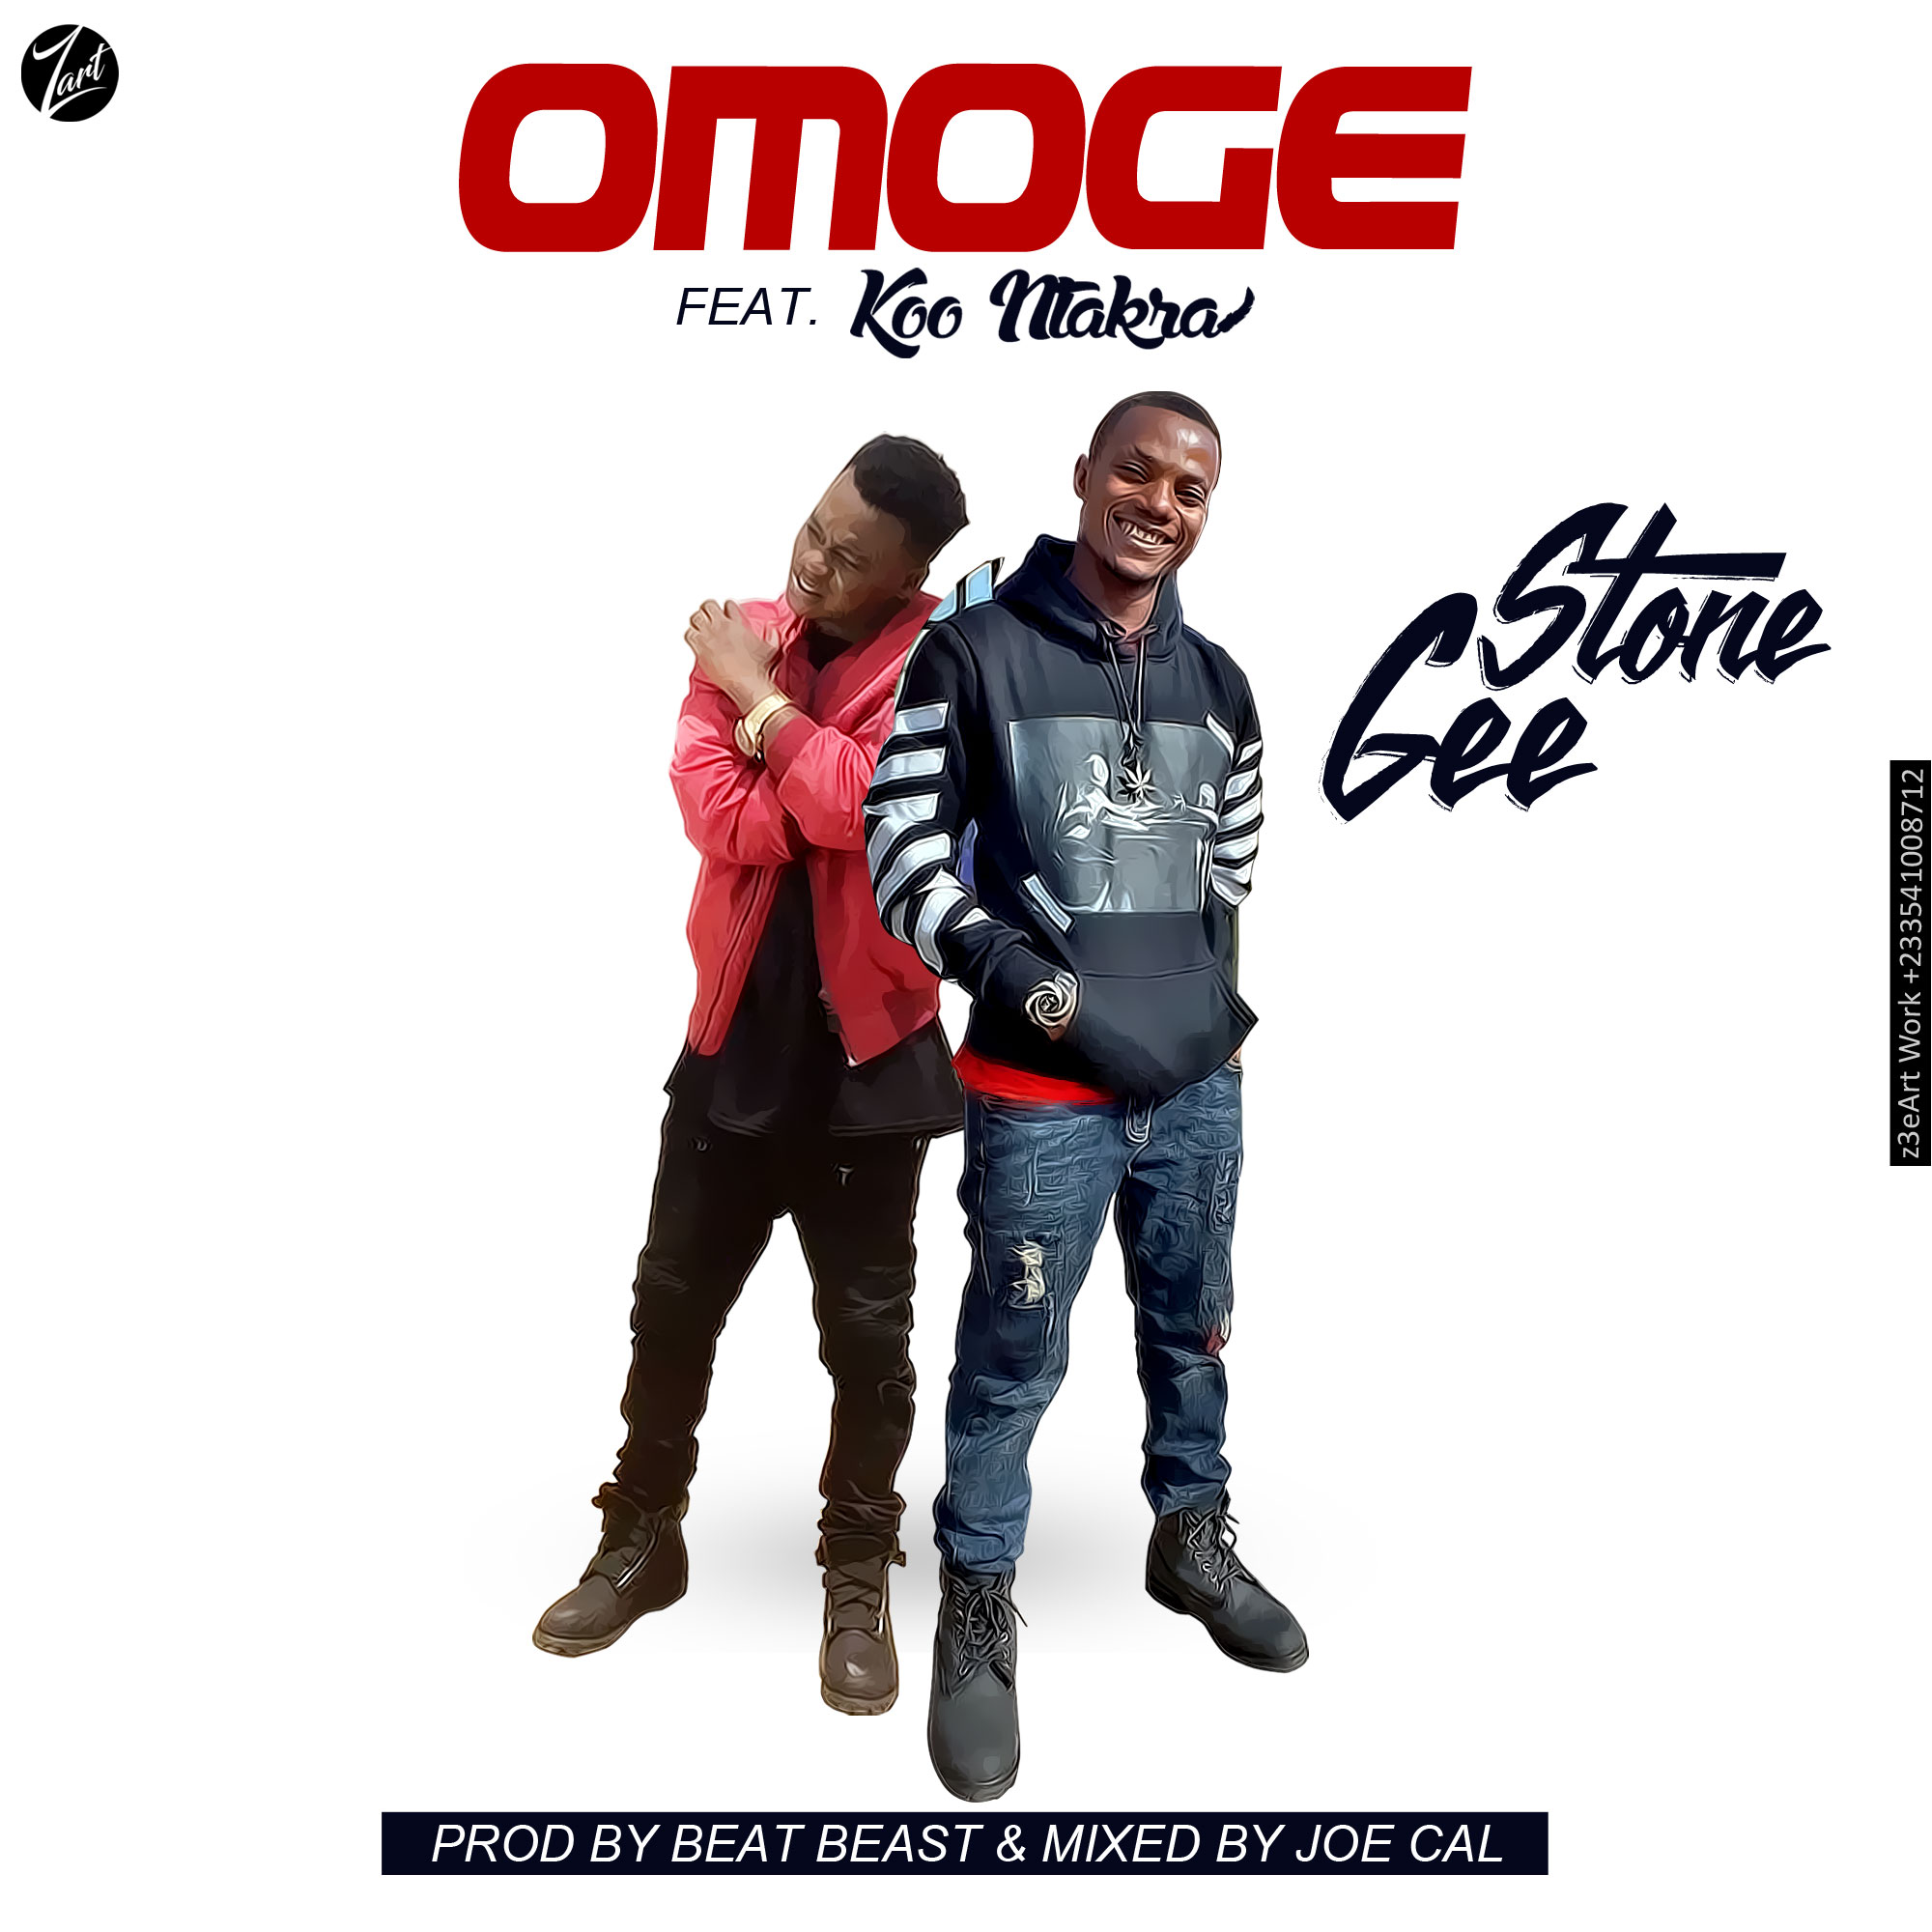 Stone Gee feat. Koo Ntakra – Omoge (Prod. by Beat Beast & Mixed by Joe Cal)